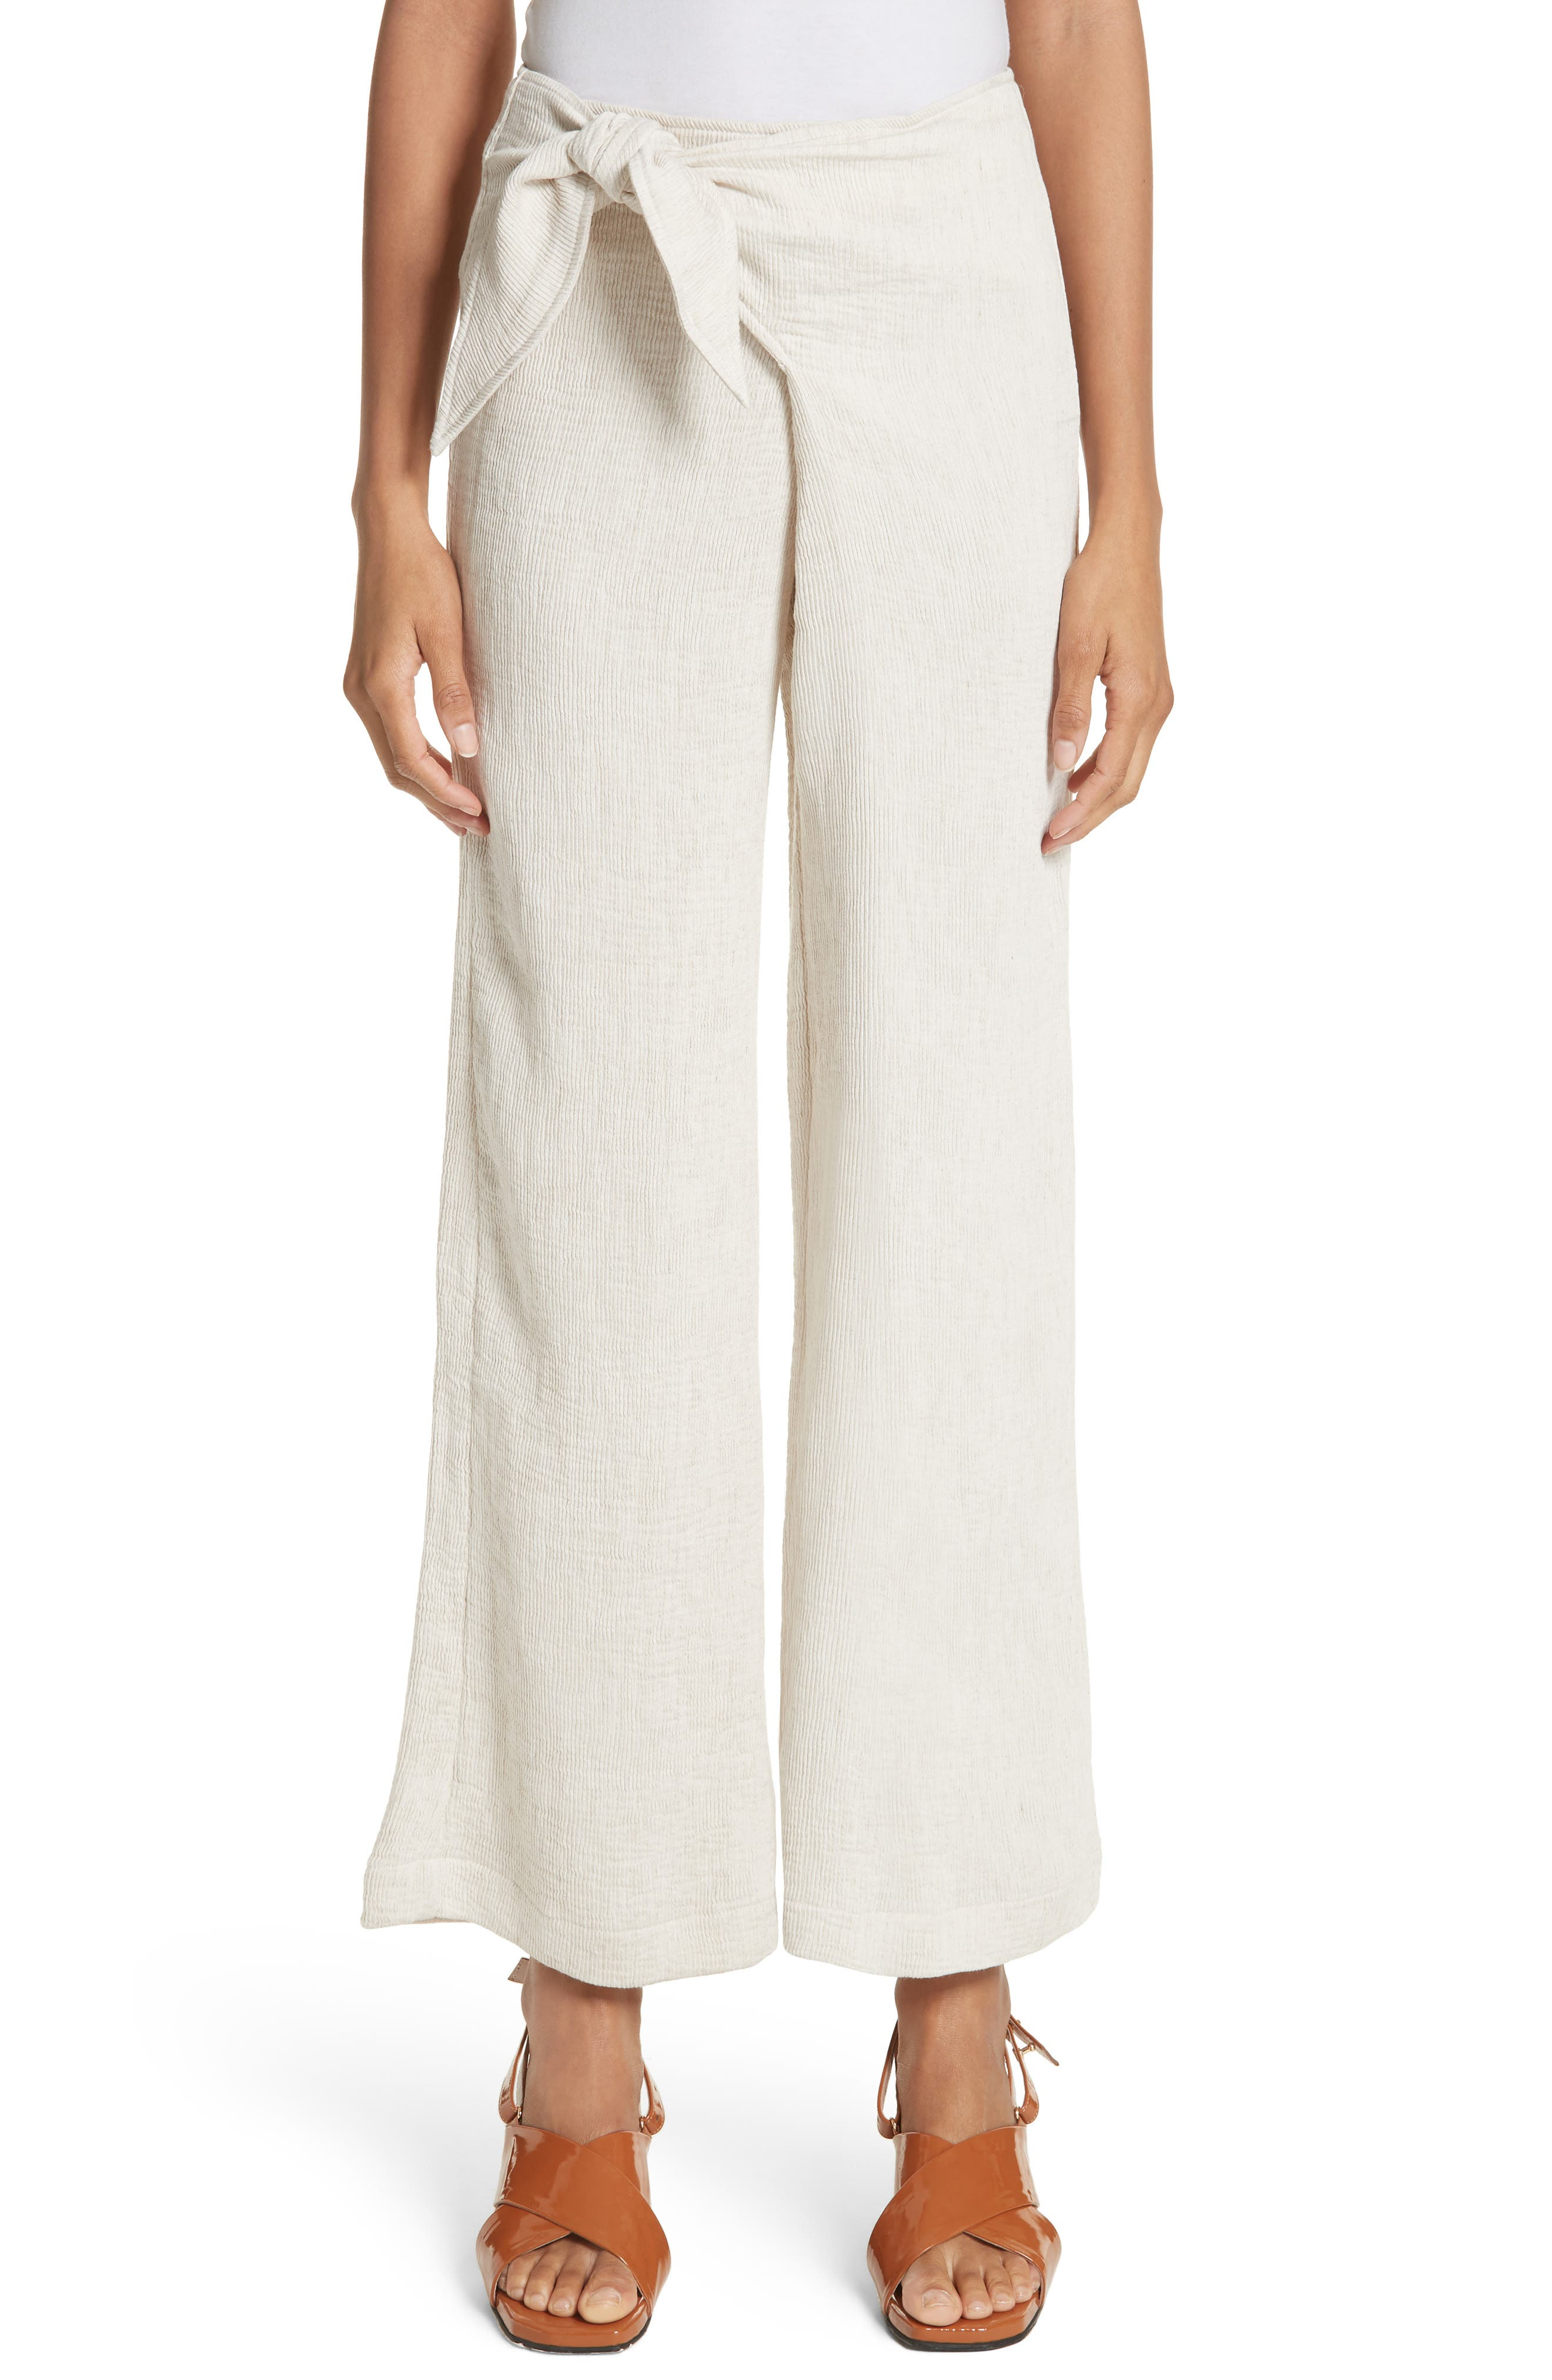 Hatton Drawstring Tie Front Pants,                         Main,                         color, Ivory